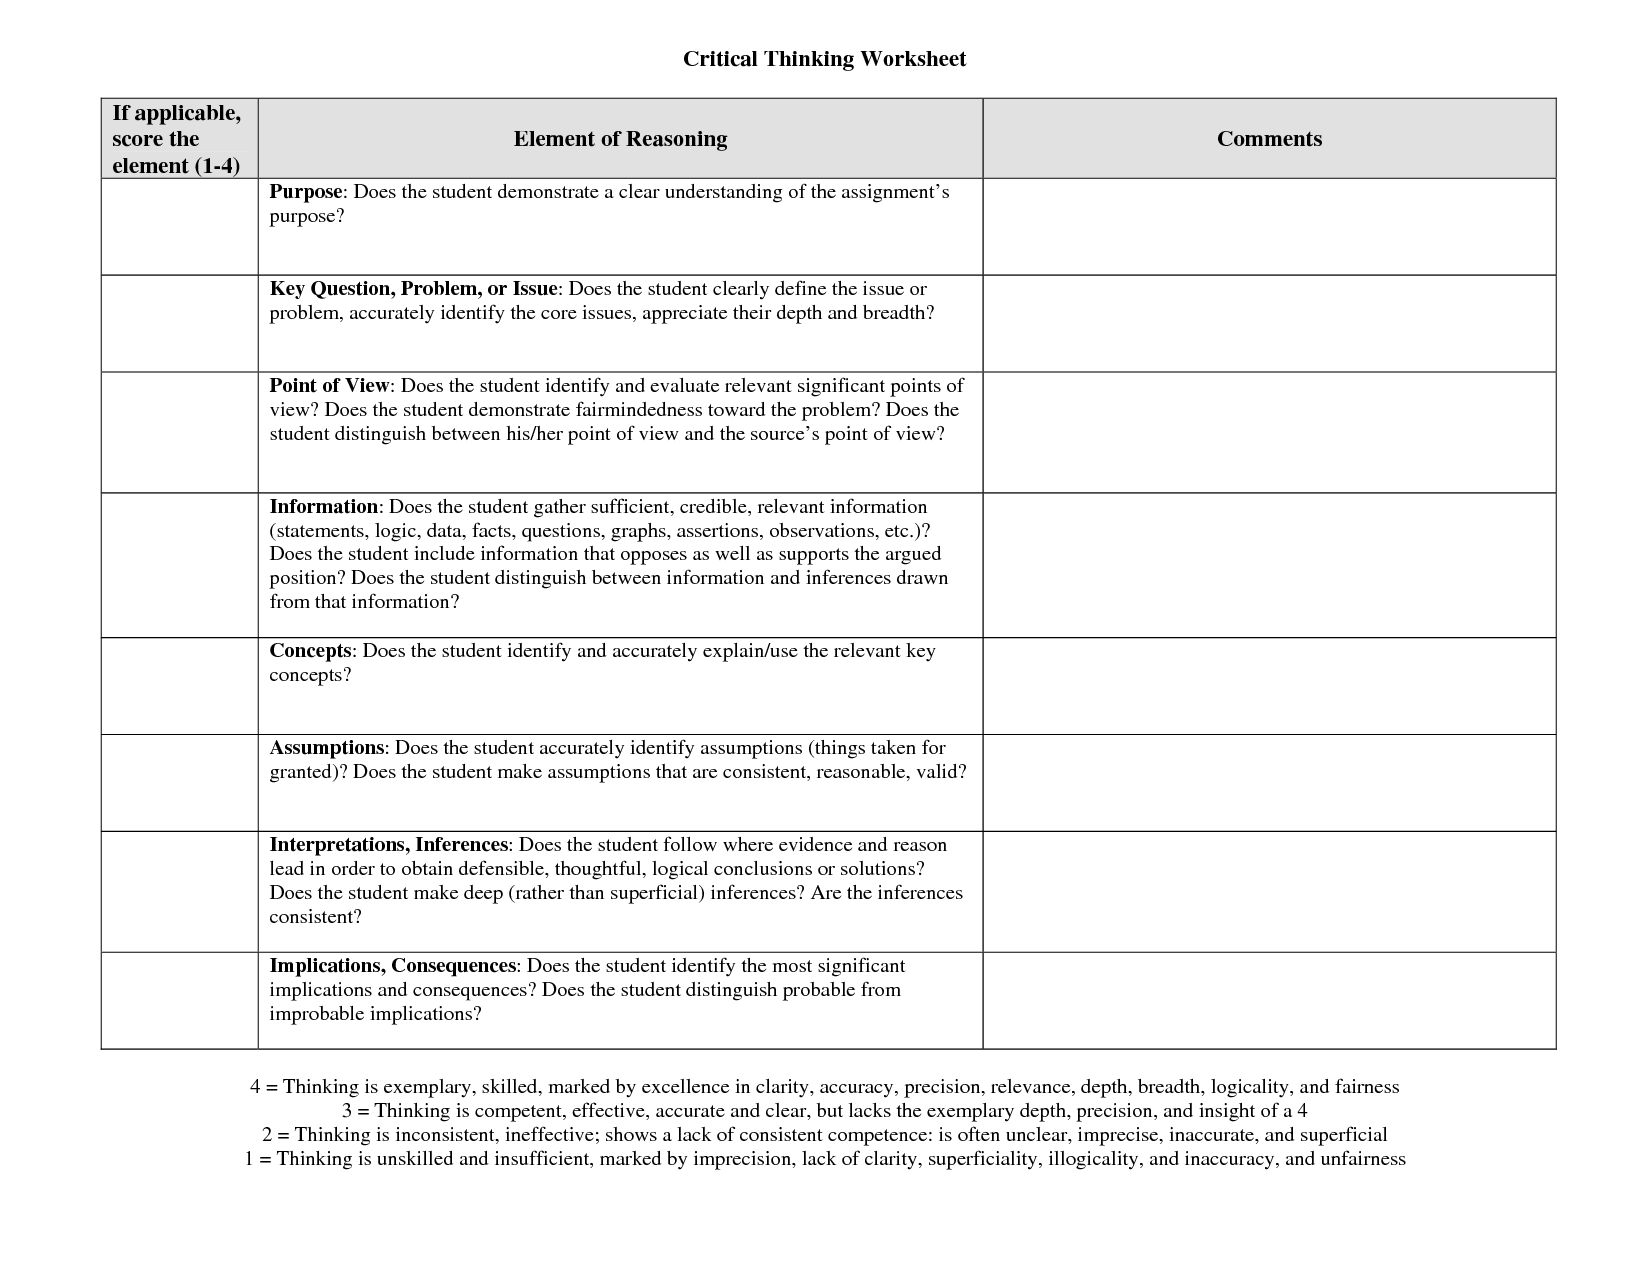 Avid Critical Thinking Worksheet